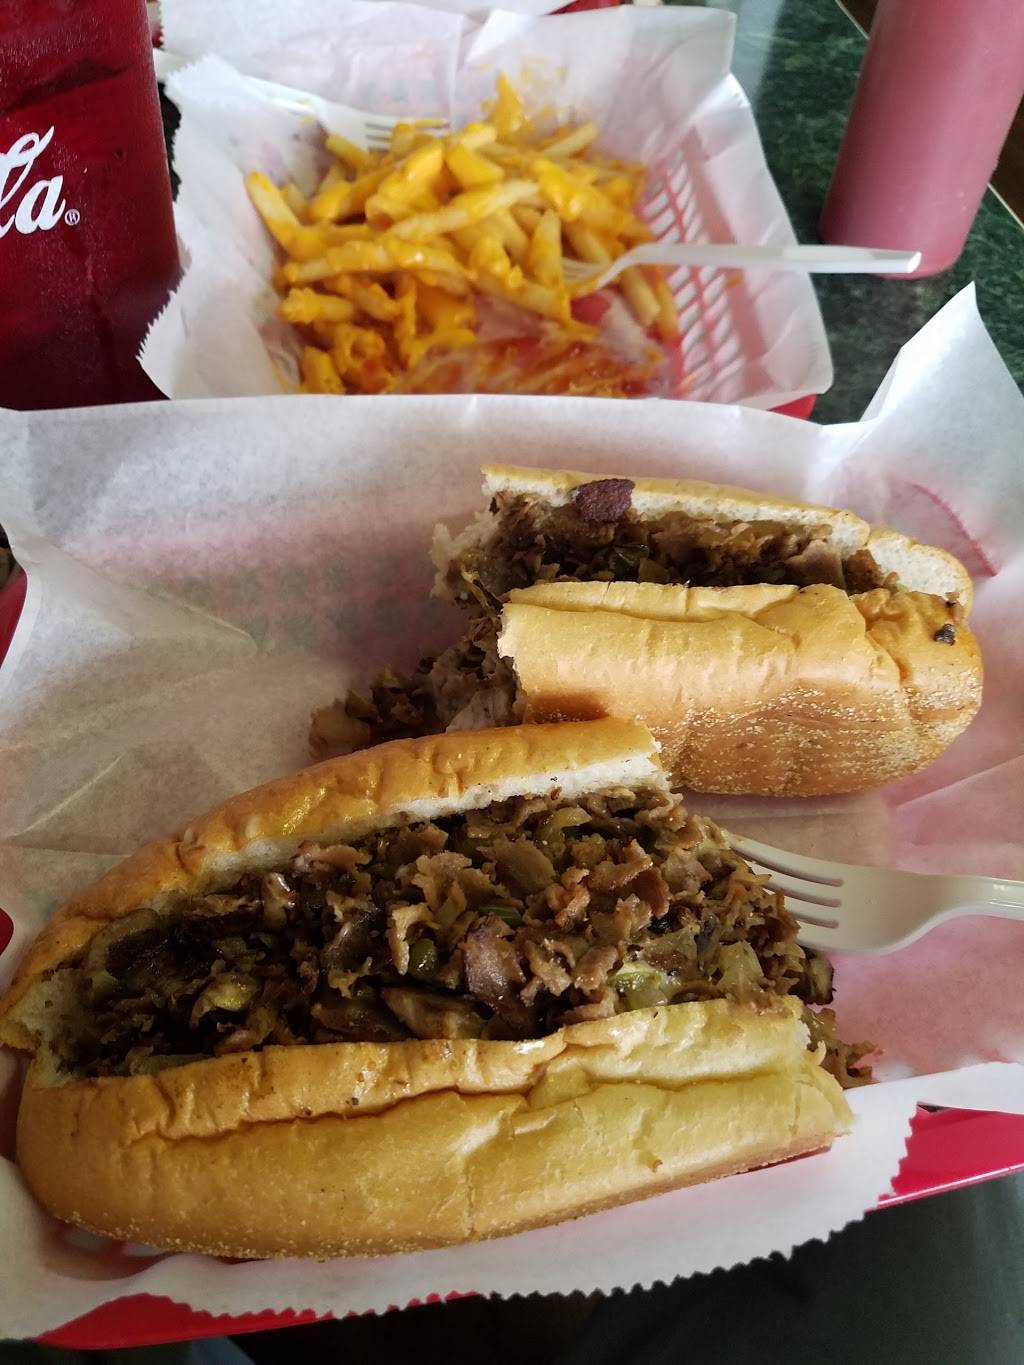 Taste of Philly | meal delivery | 3552 N Academy Blvd, Colorado Springs, CO 80917, USA | 7196380020 OR +1 719-638-0020